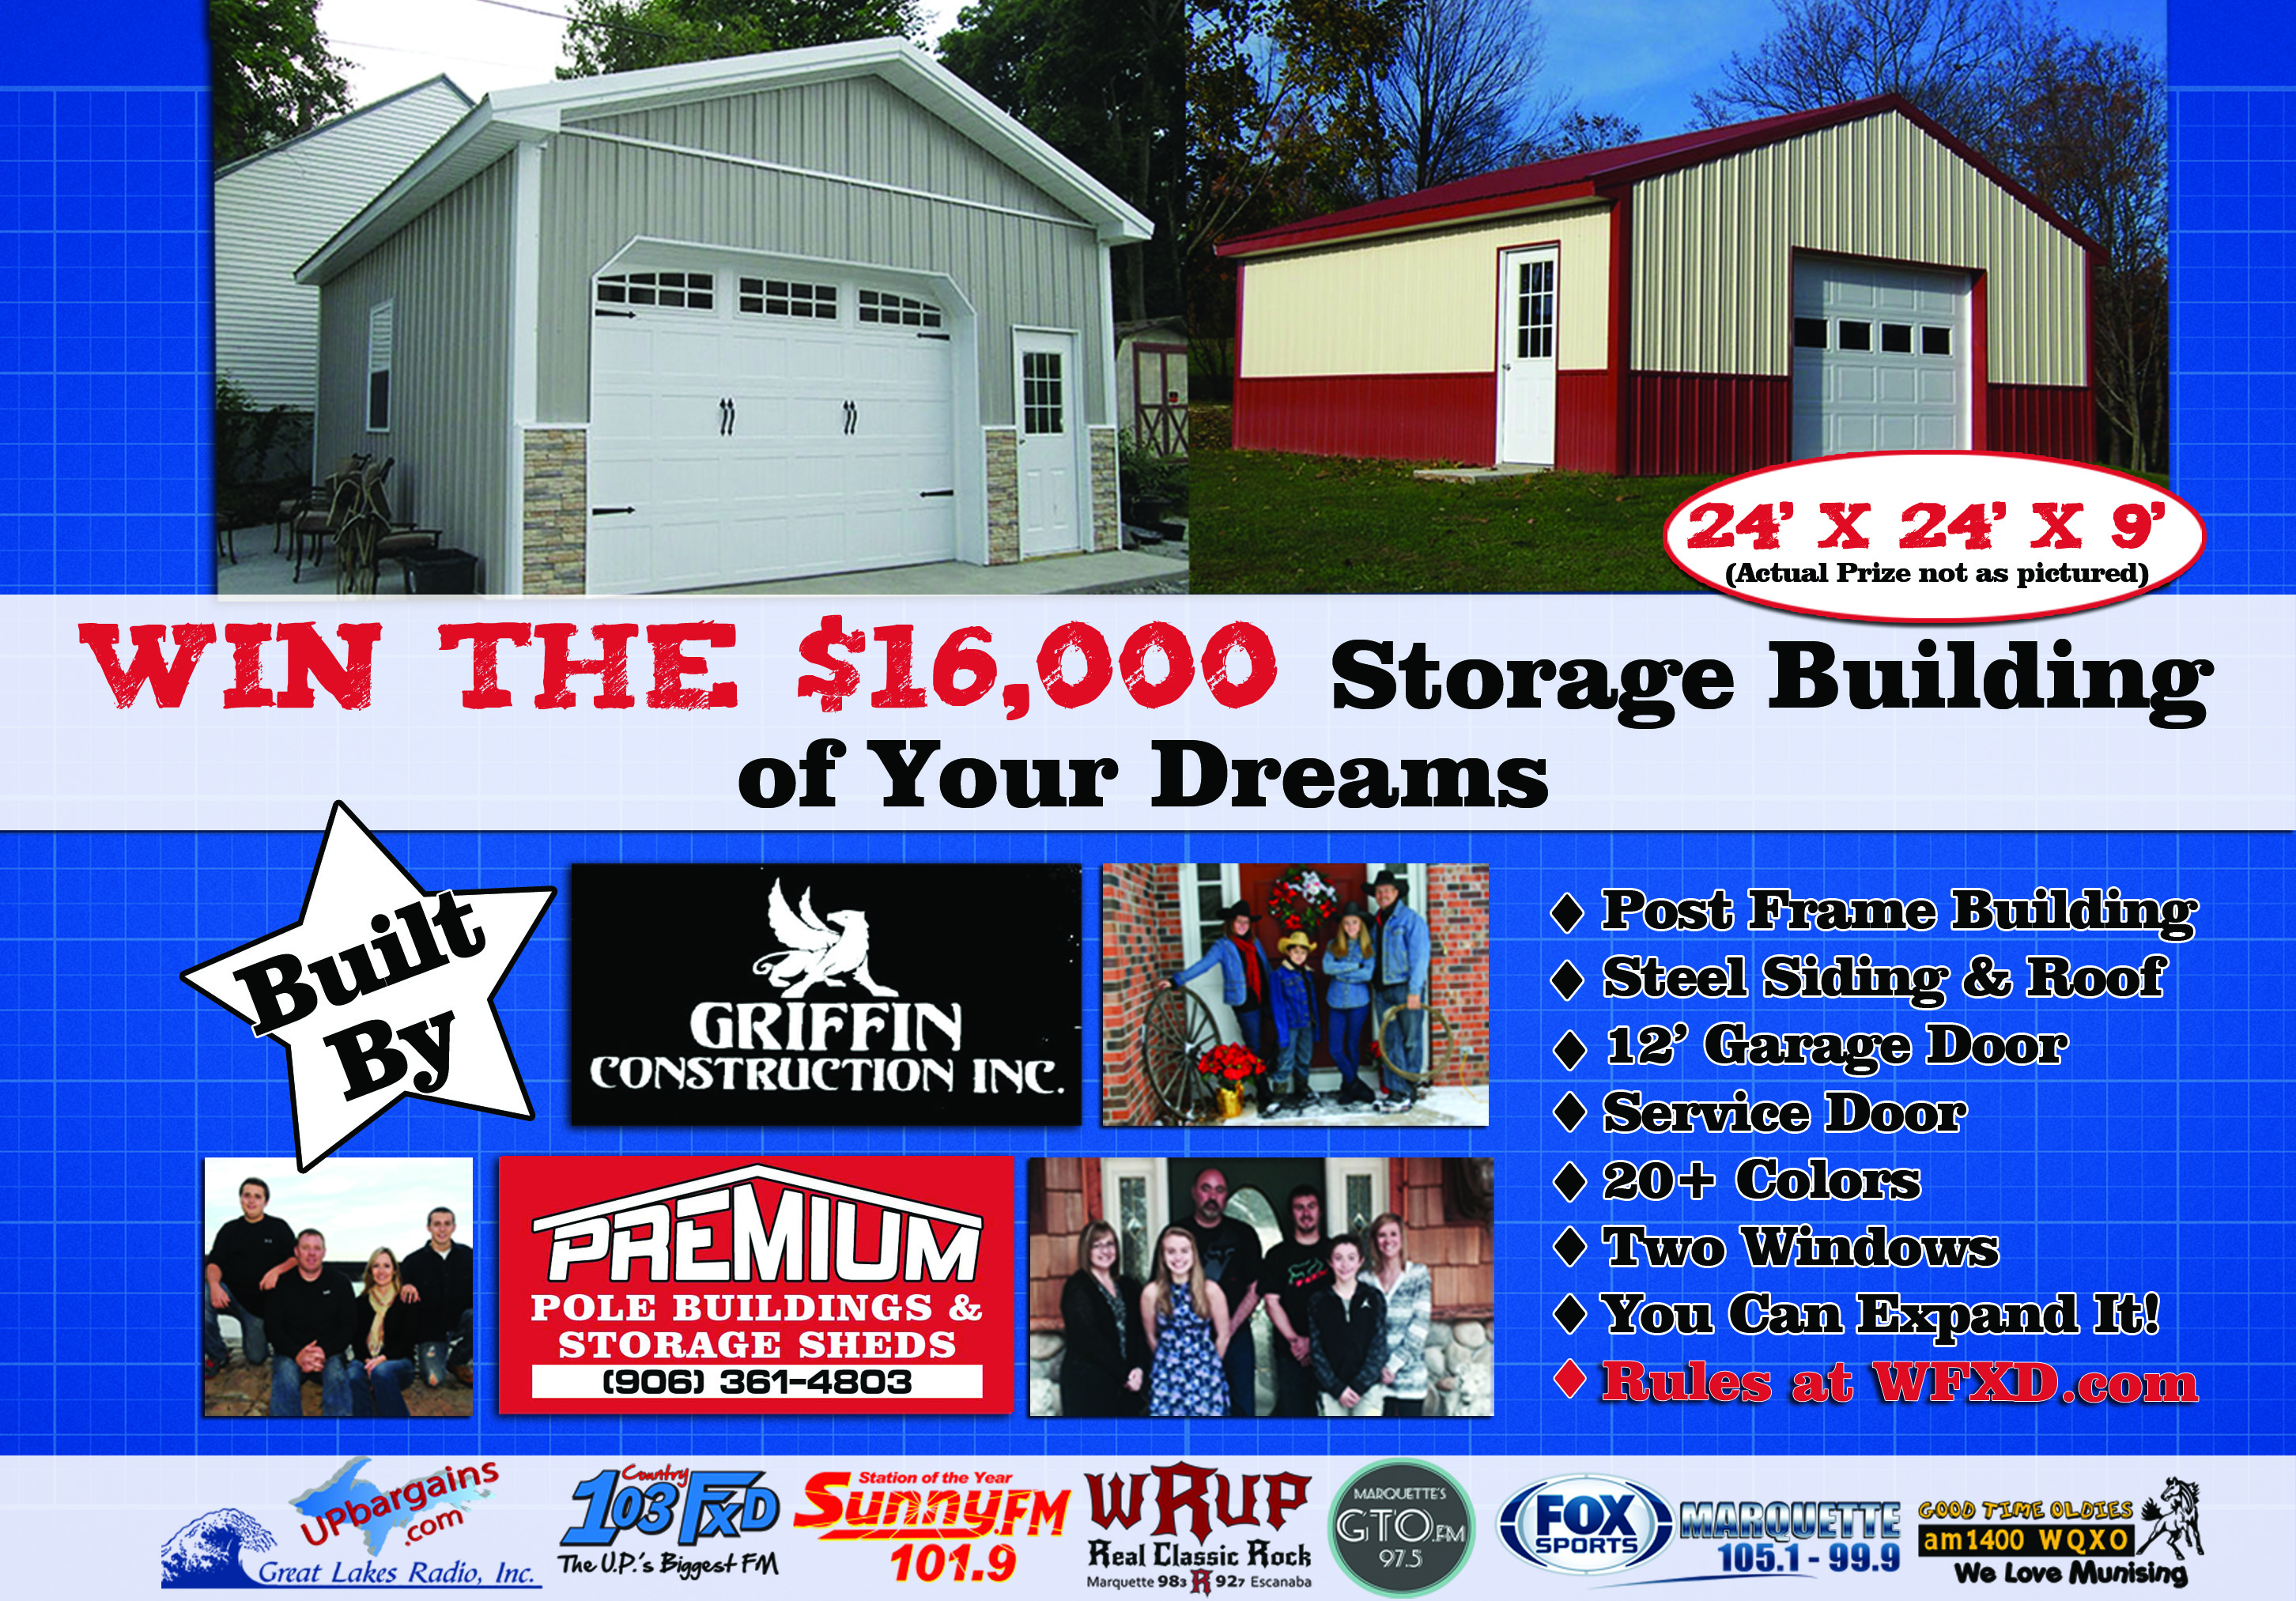 Great Lakes Radio invites you to register for the Storage Building of Your Dreams Giveaway!